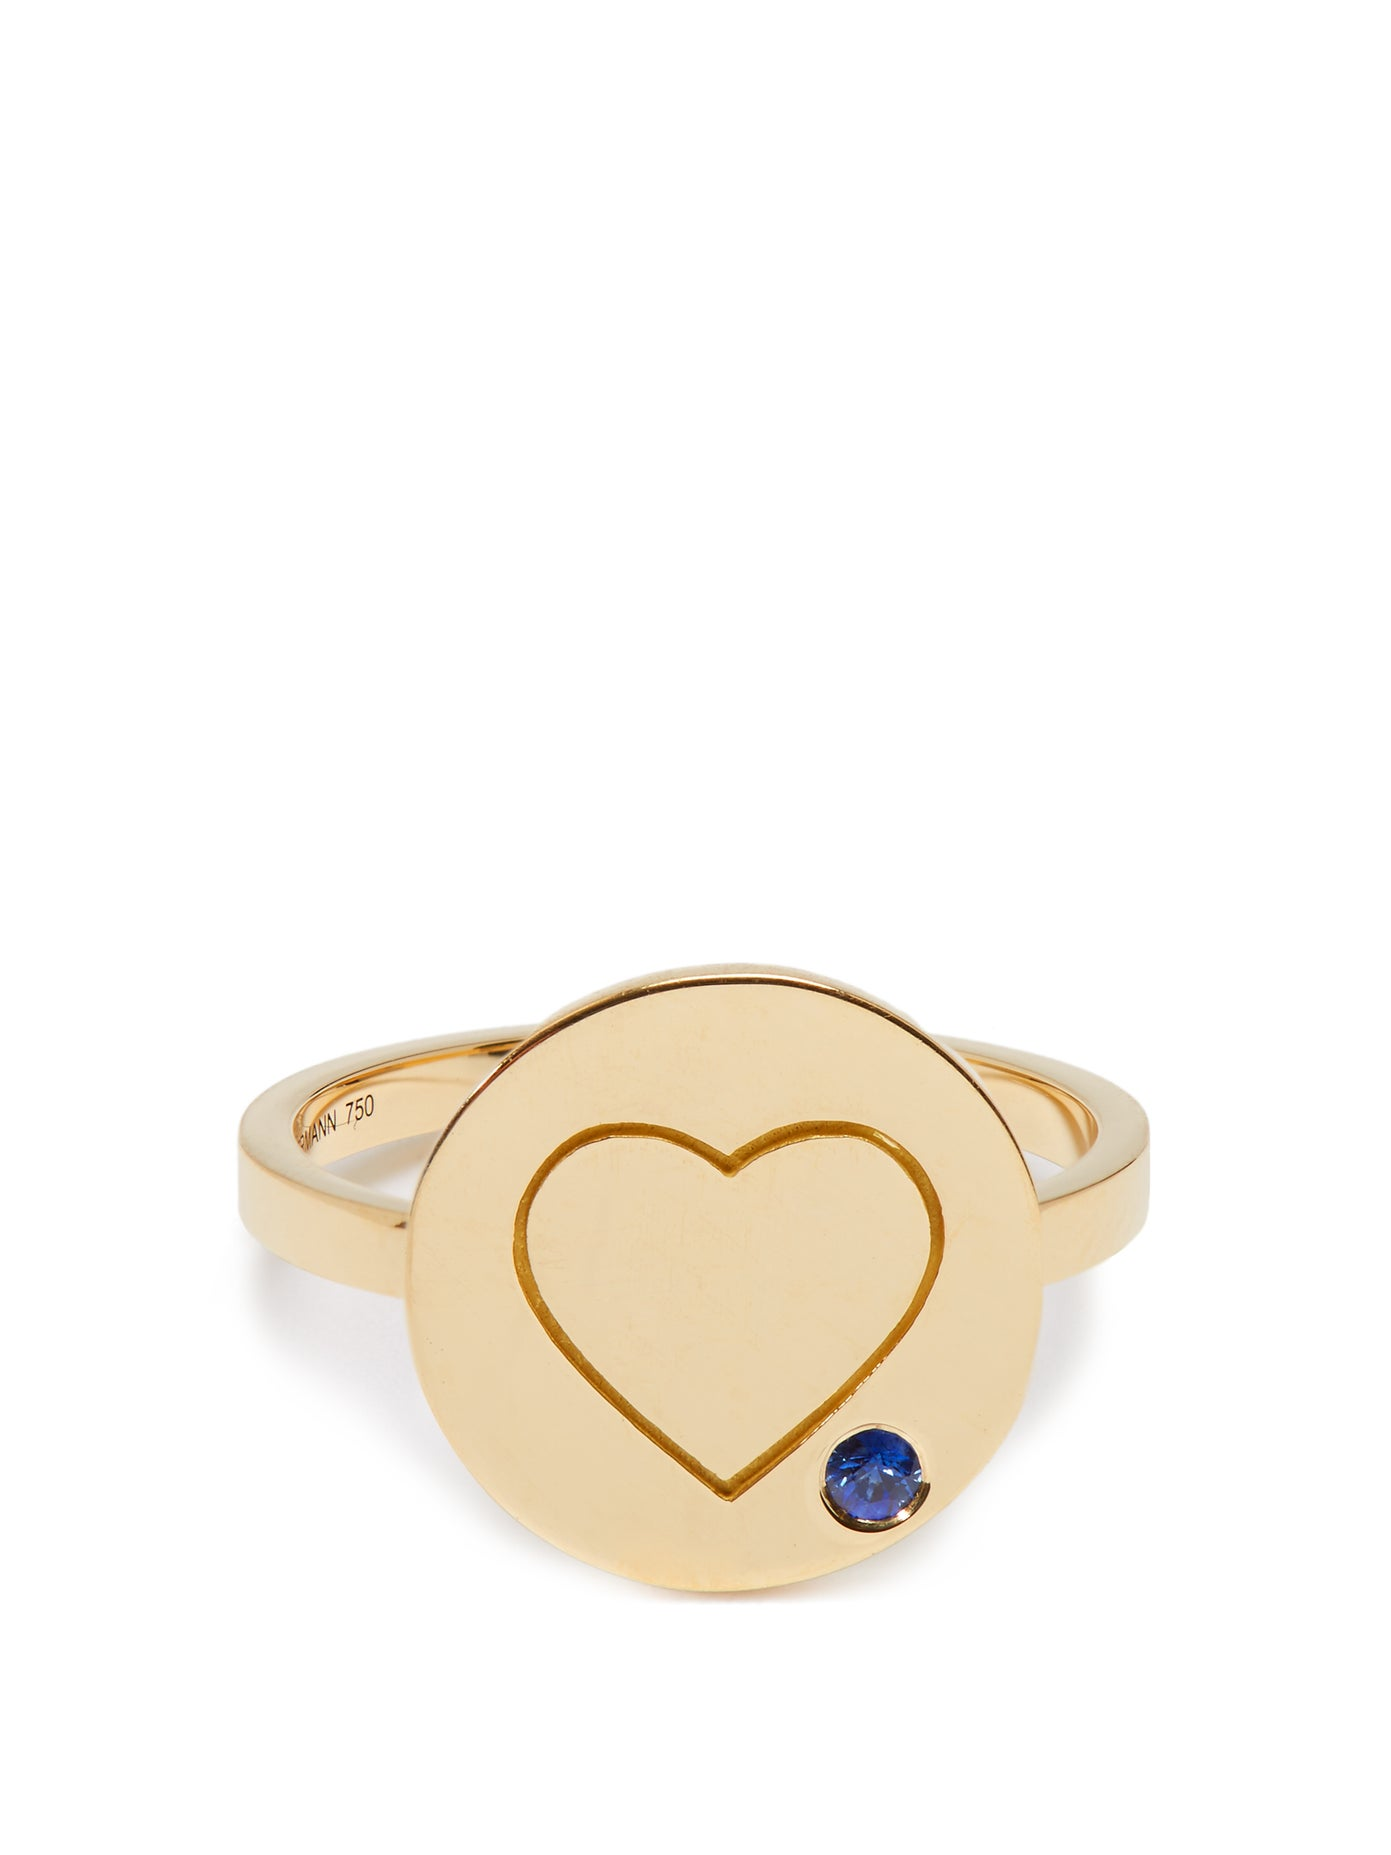 Heart Sapphire and Yellow-Gold Ring